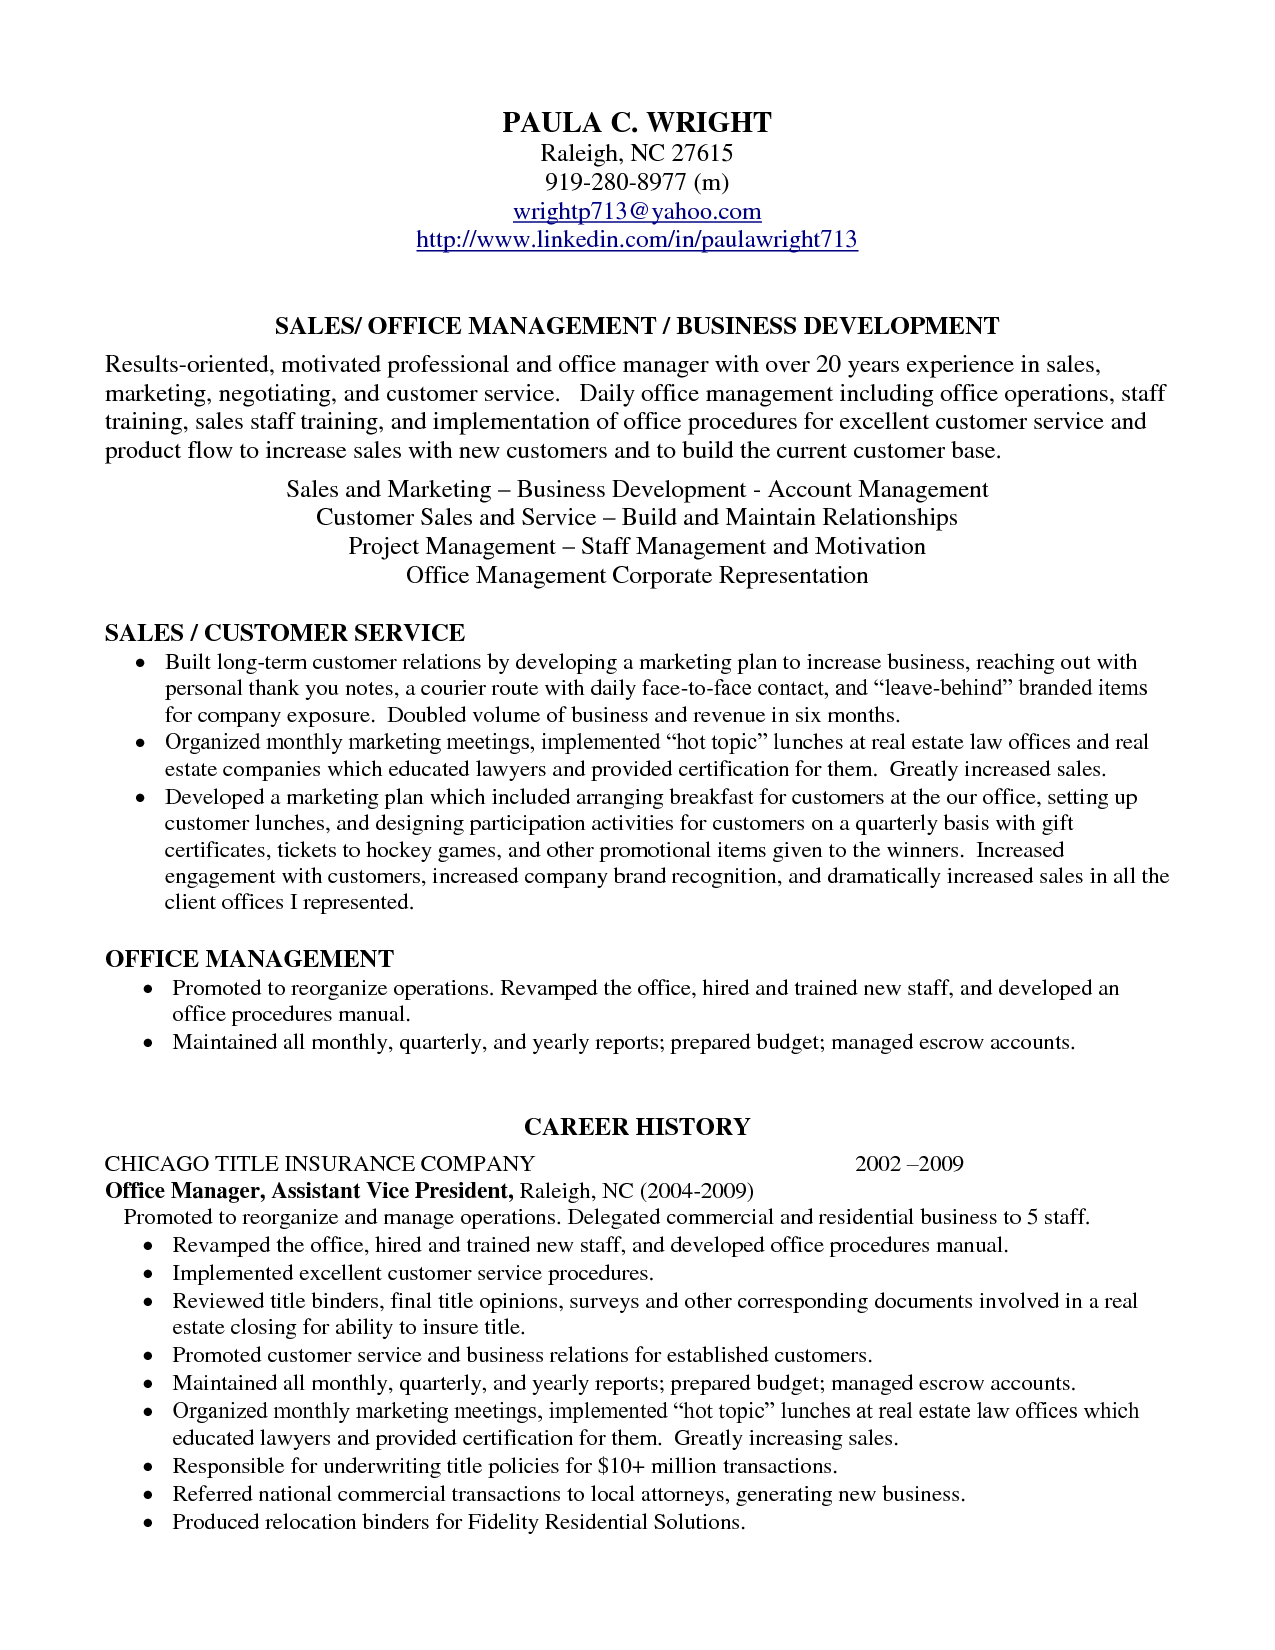 Perfect Resume Example Professional Profile Resume Examplesresume Professional Profile